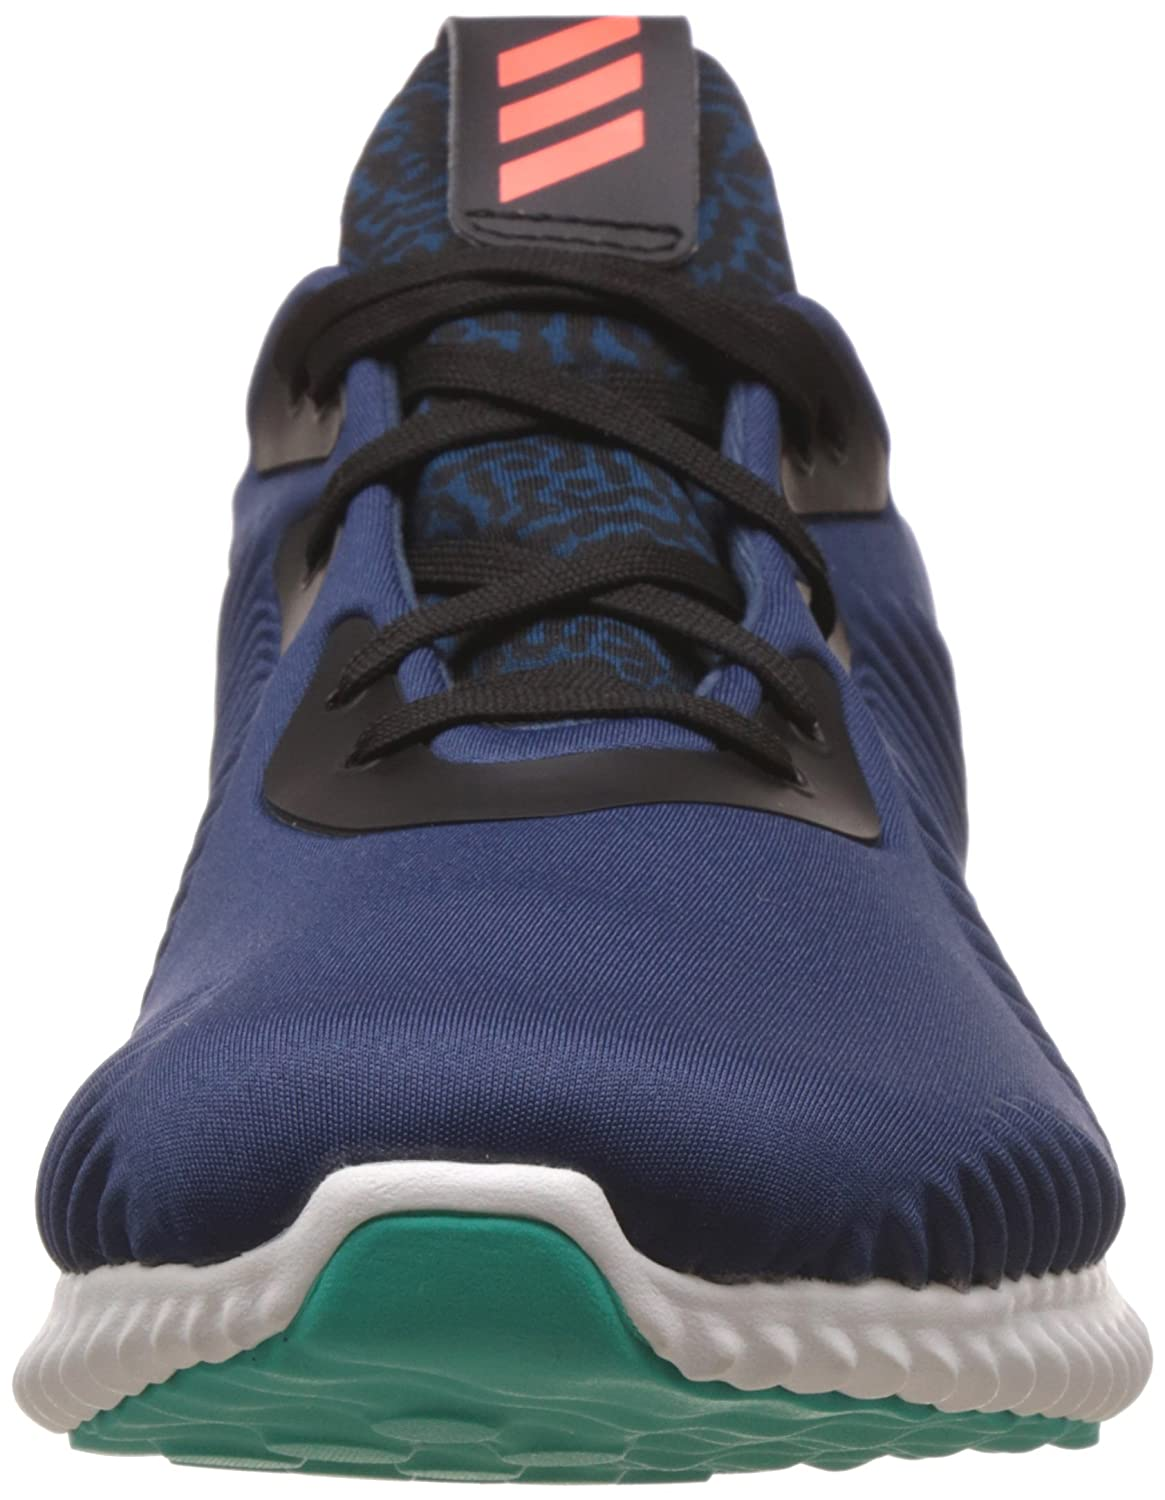 adidas Men's Alphabounce M Minblu, Solred and Shogrn Running Shoes - 10  UK/India (44.7 EU): Buy Online at Low Prices in India - Amazon.in